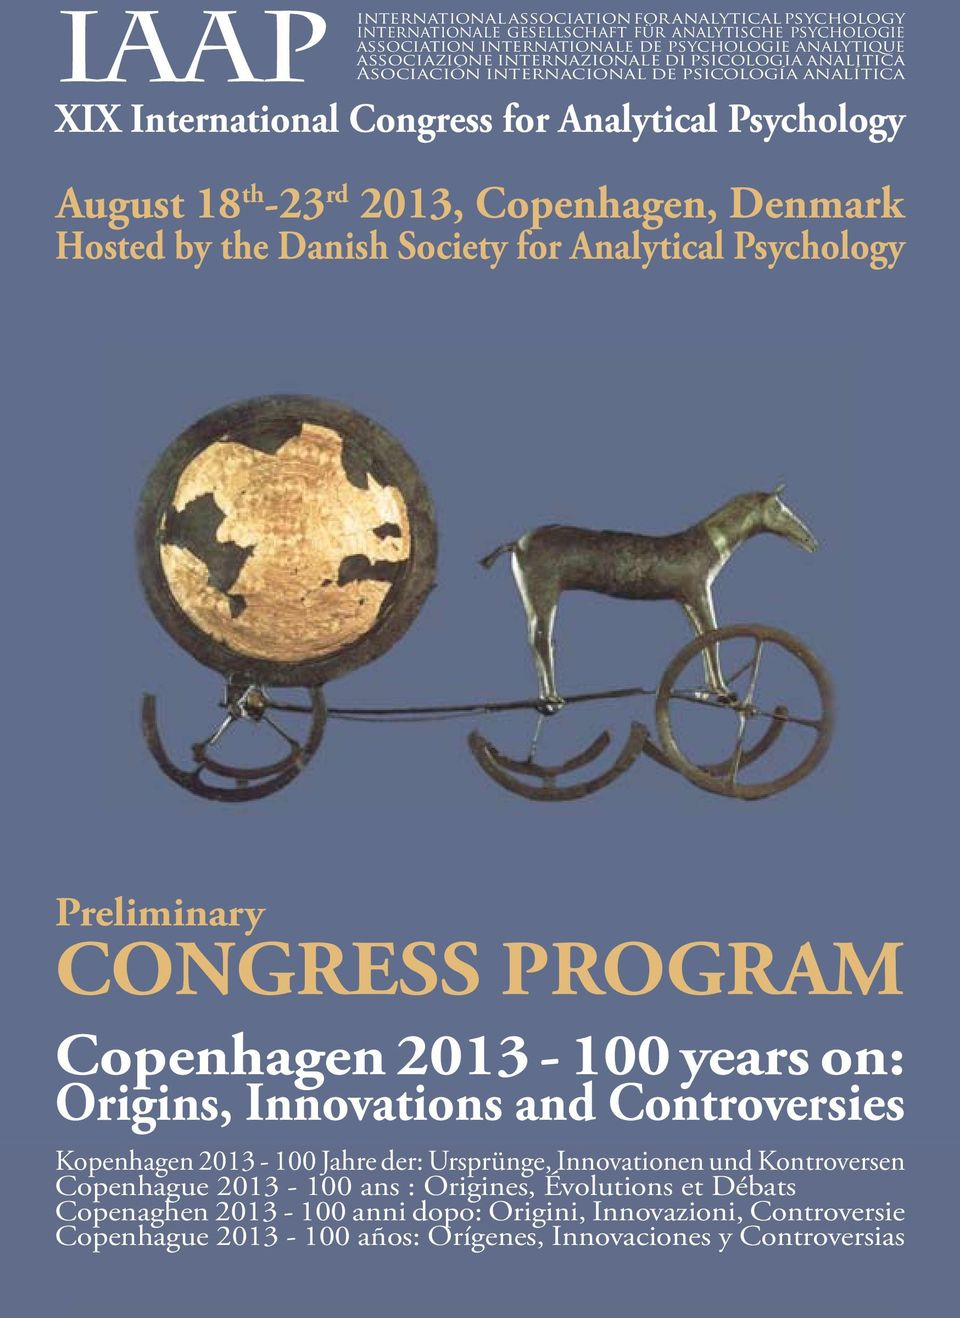 Society for Analytical Psychology Preliminary CONGRESS PROGRAM Copenhagen 2013-100 years on: Origins, Innovations and Controversies Kopenhagen 2013-100 Jahre der: Ursprünge, Innovationen und